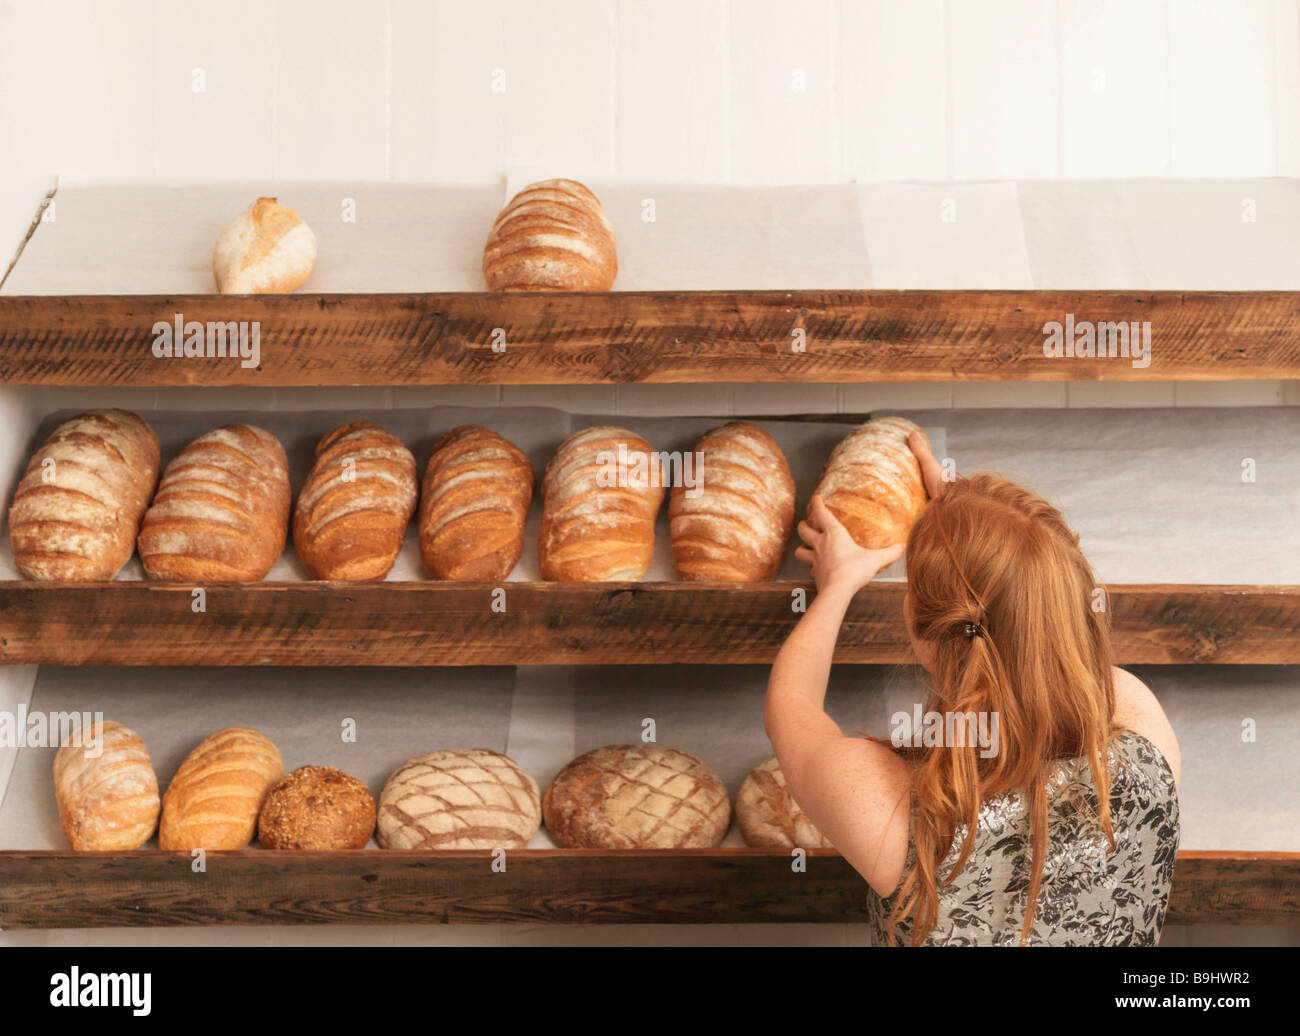 Woman stocking shelves in bakery - Stock Image